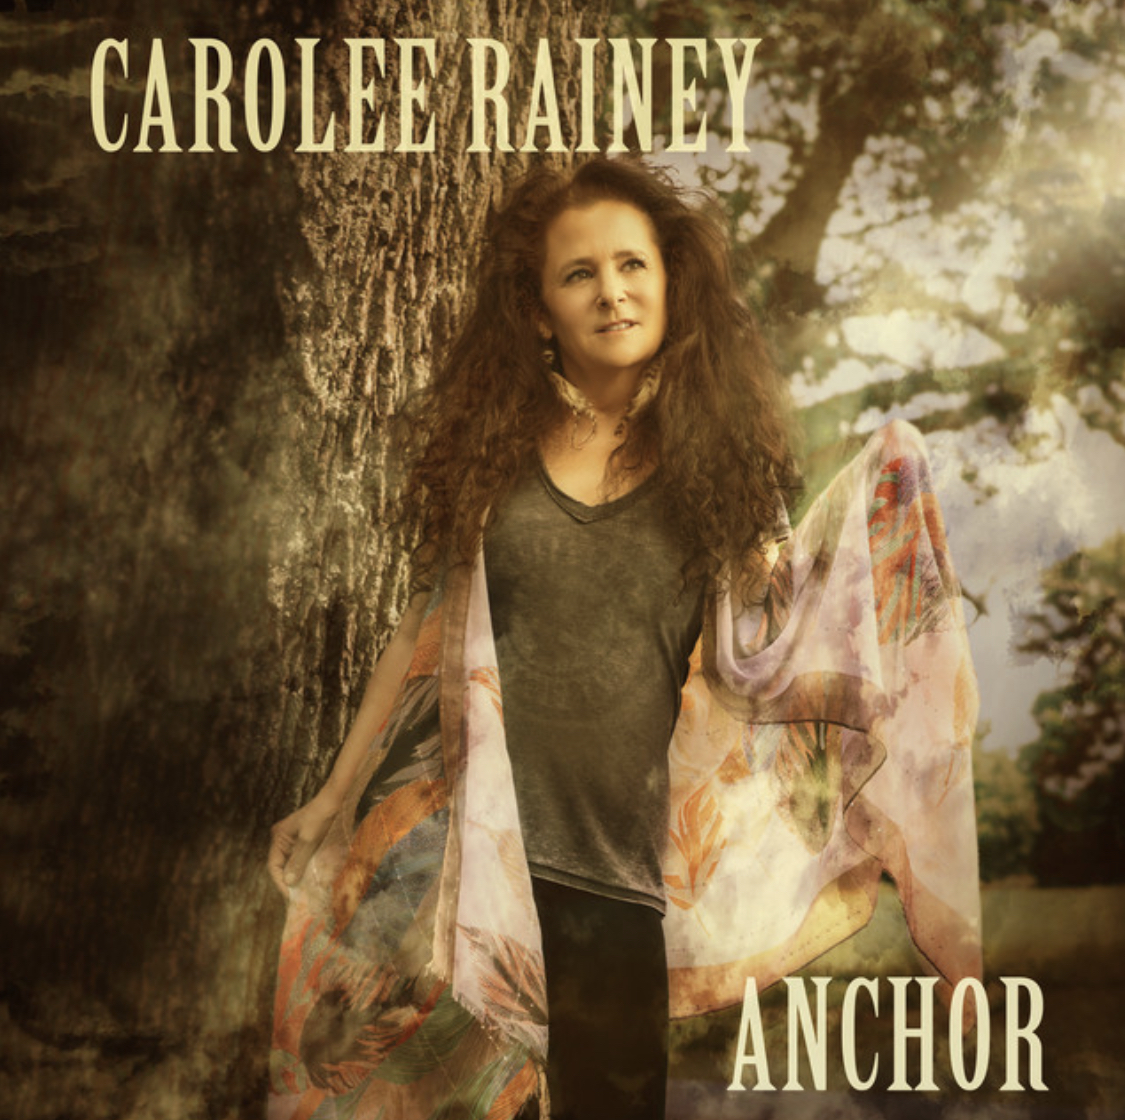 Carolee Rainey's song 'ANCHOR' deeply speaks to anyone who's ever felt abandoned. After such an occurrence it can truly feel paralyzing to carry on with life.